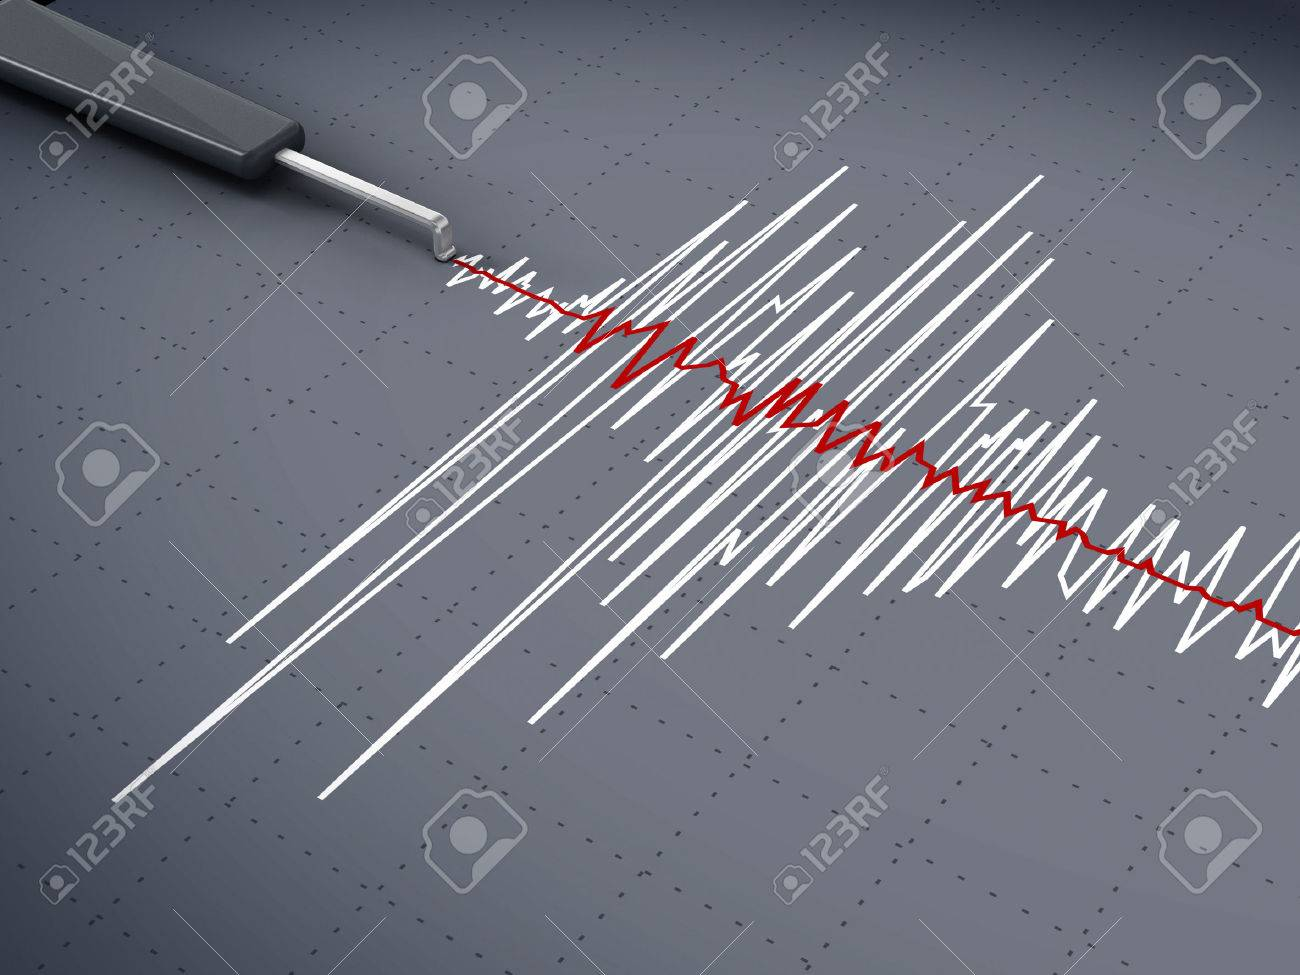 Seismic activity graph showing an earthquake. Stock Photo - 43581425